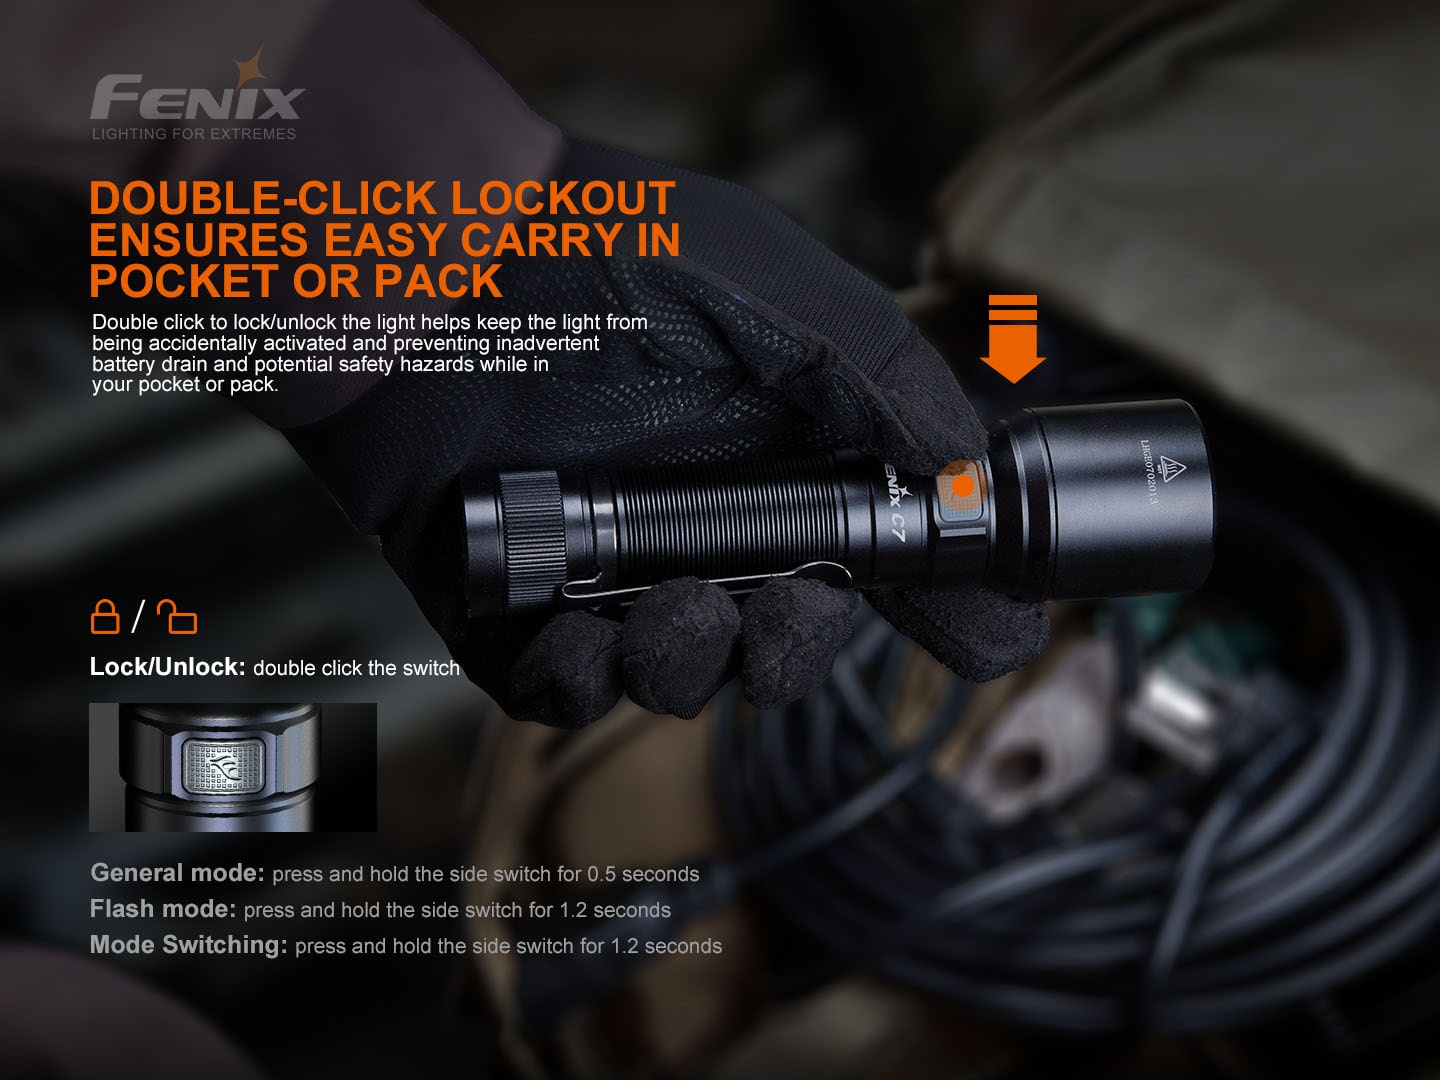 Fenix C7 LED Torchlight, 3000 Lumens Powerful Compact Rechargeable Light, Best Work EDC Outdoors Torch